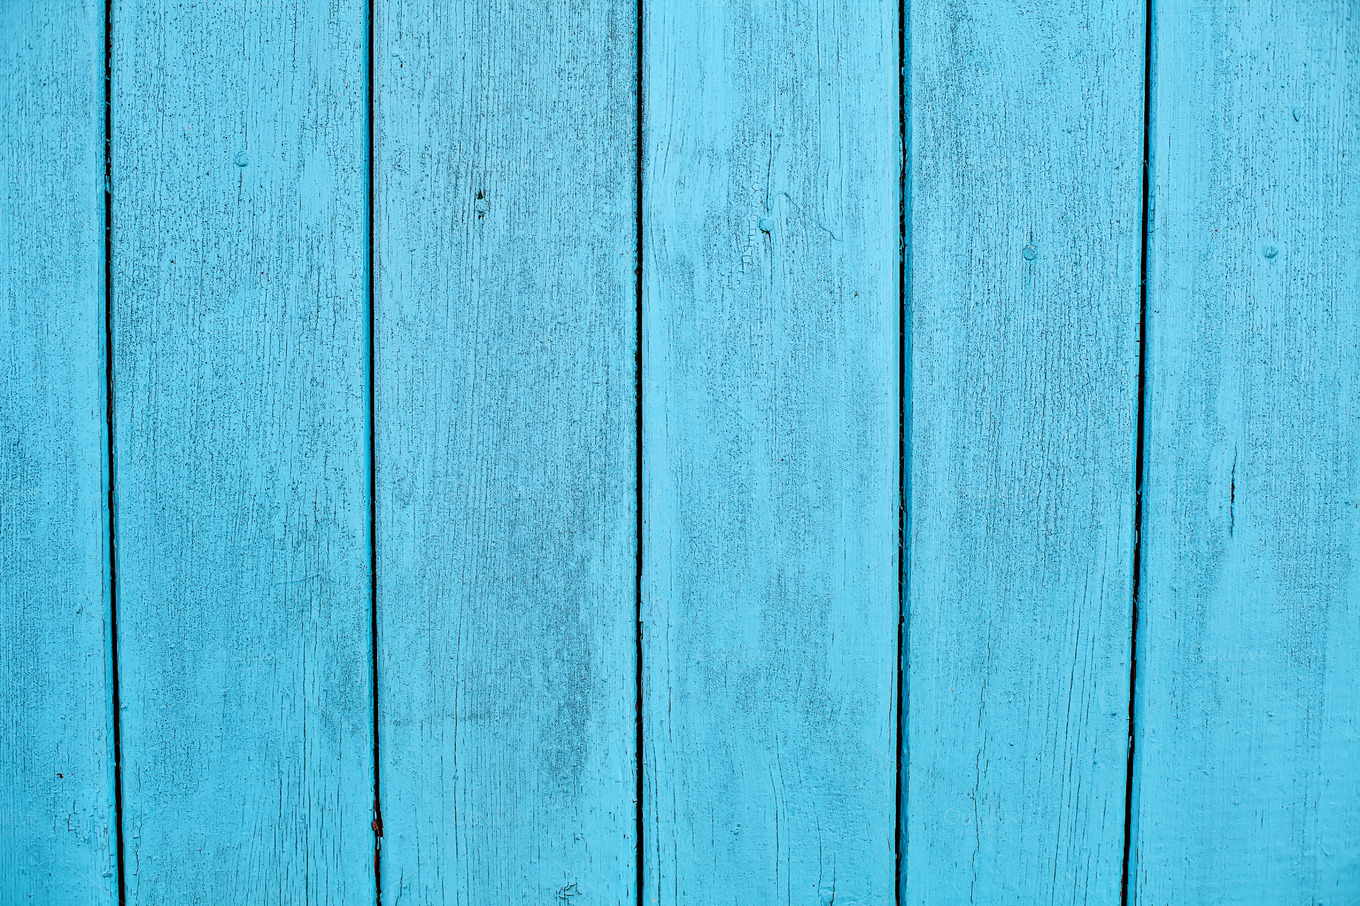 blue old wooden background texture d abstract photos on